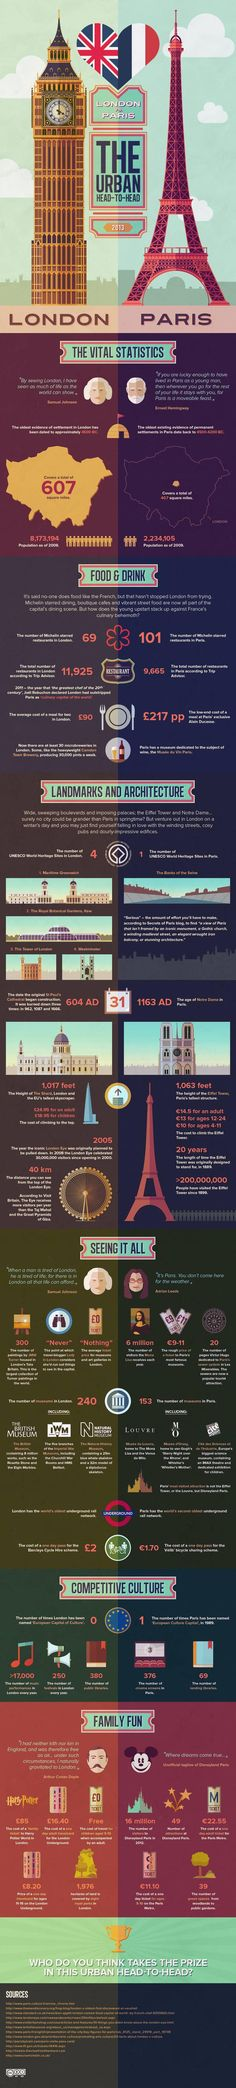 London vs Paris infographic: the urban head-to-head – Now. Here. This. – Time Out London